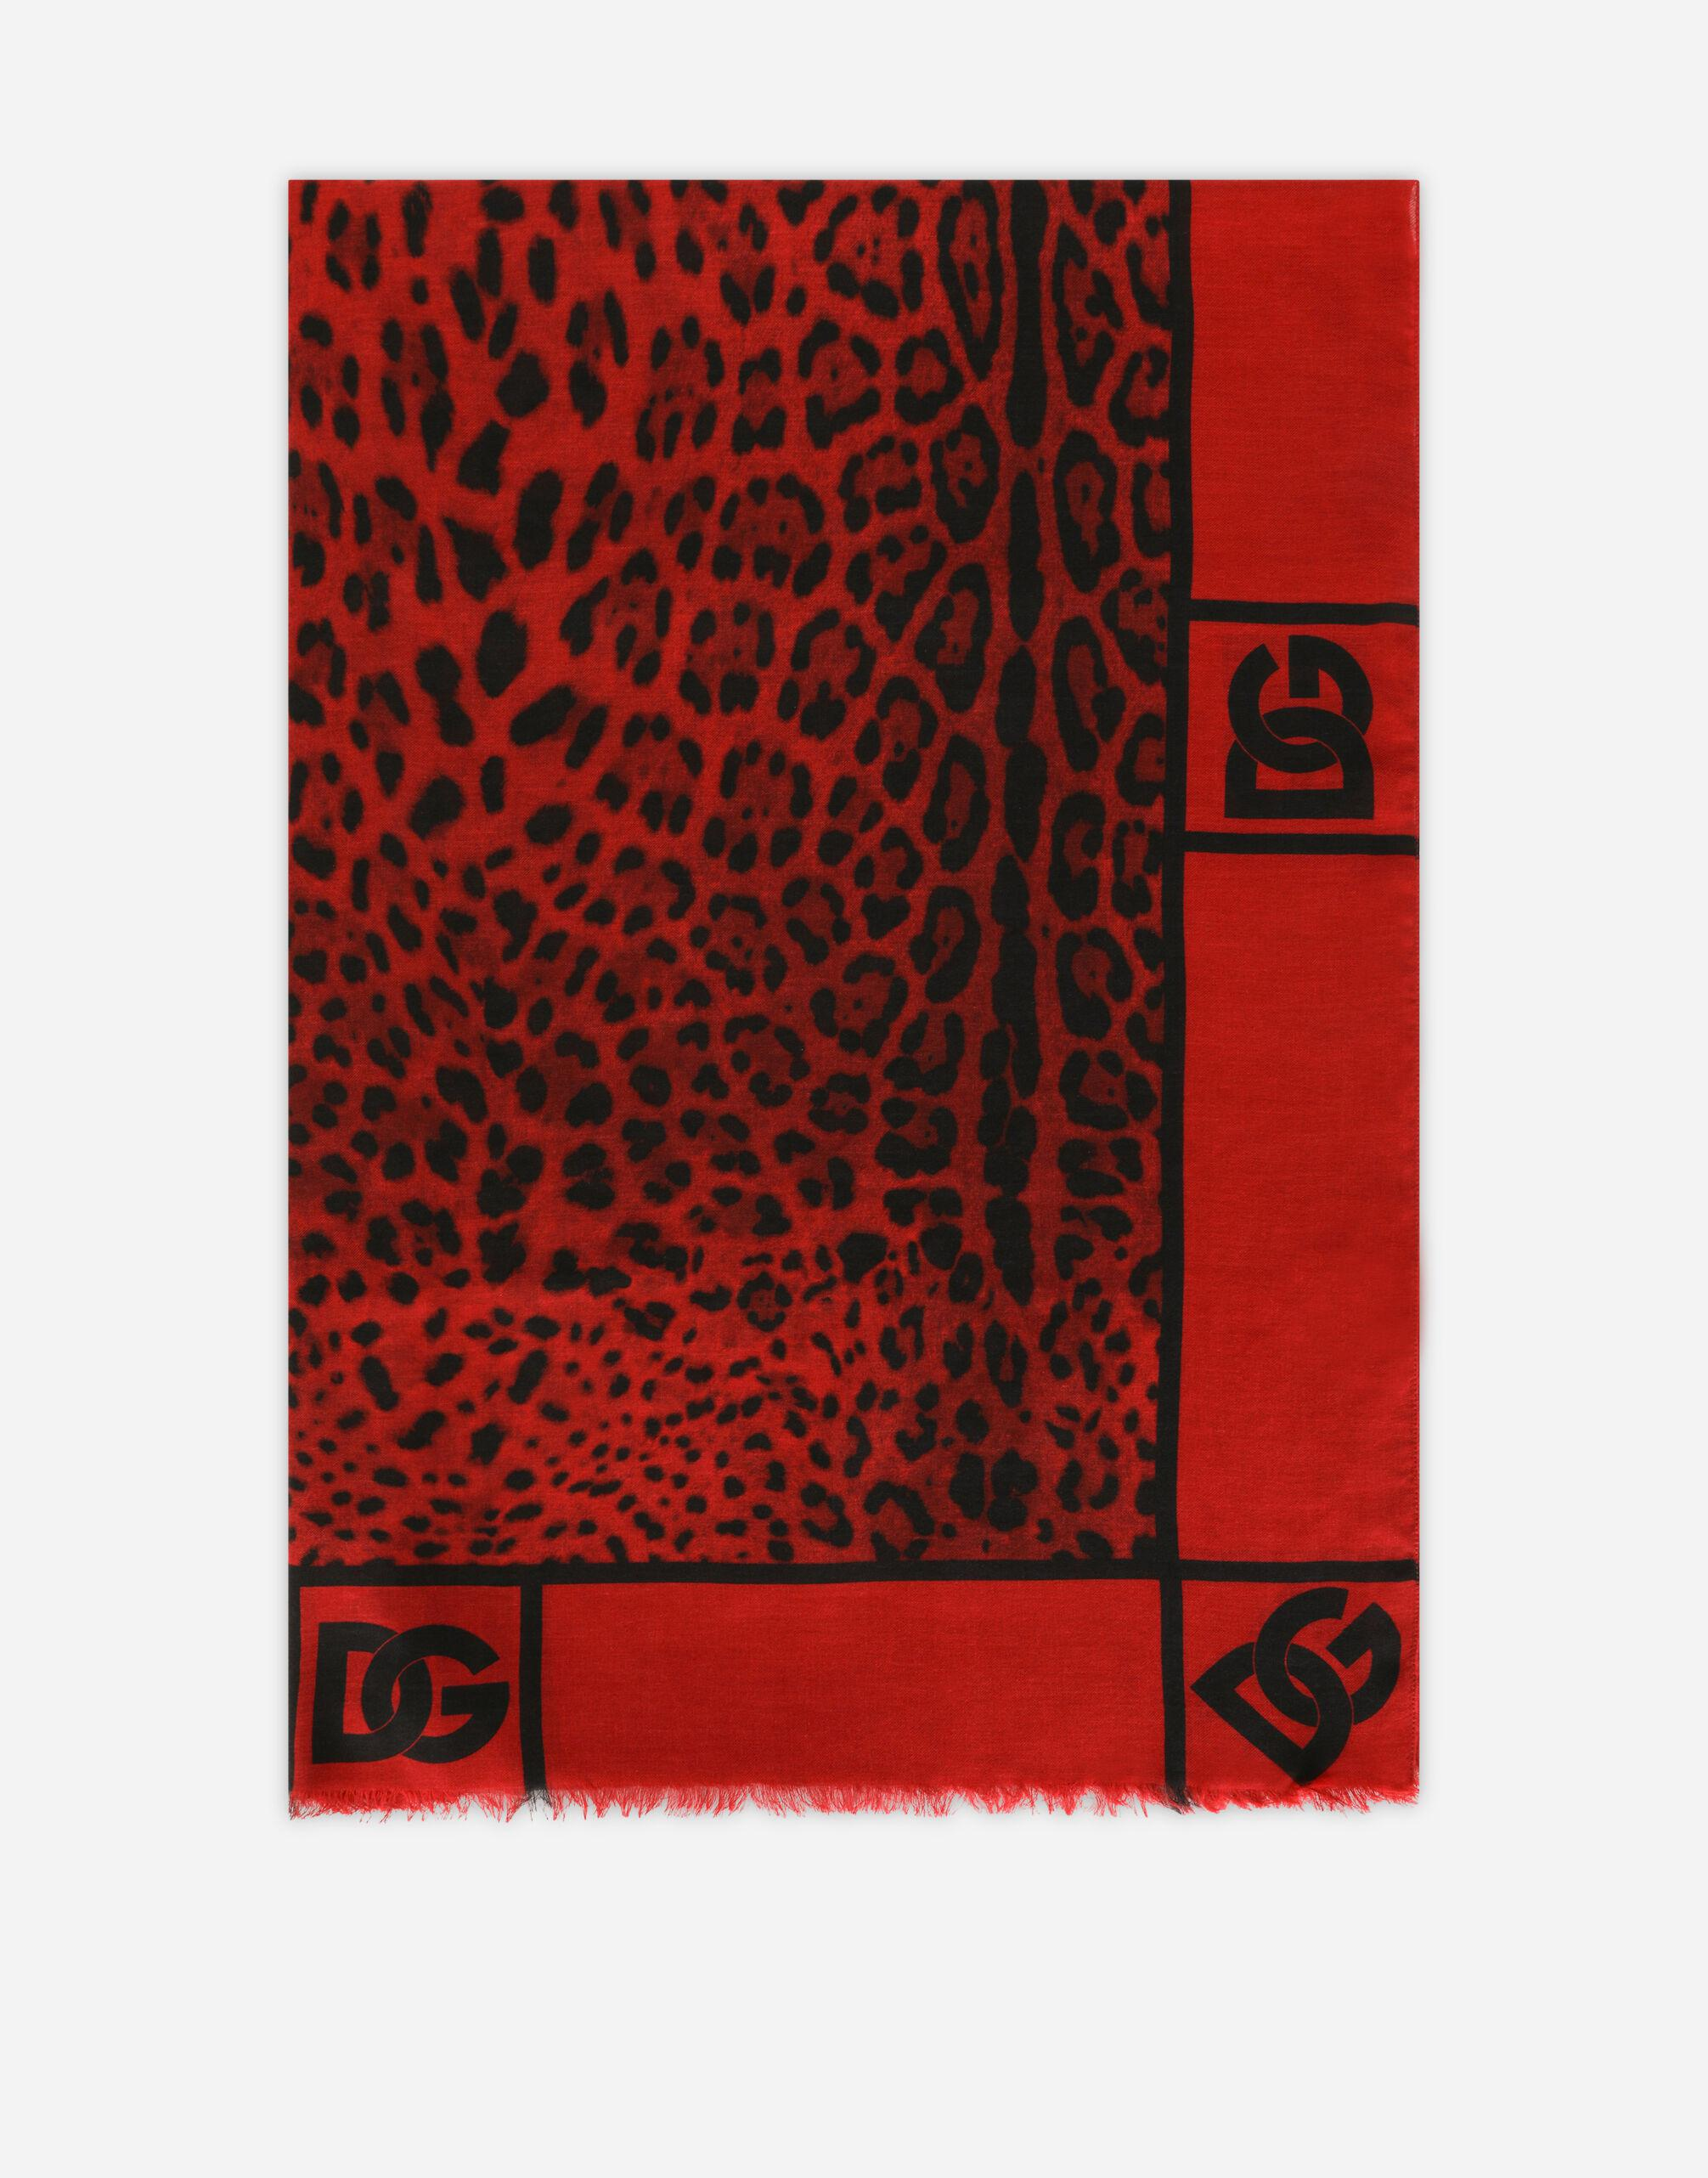 Leopard-print modal and cashmere scarf (135 x 200)